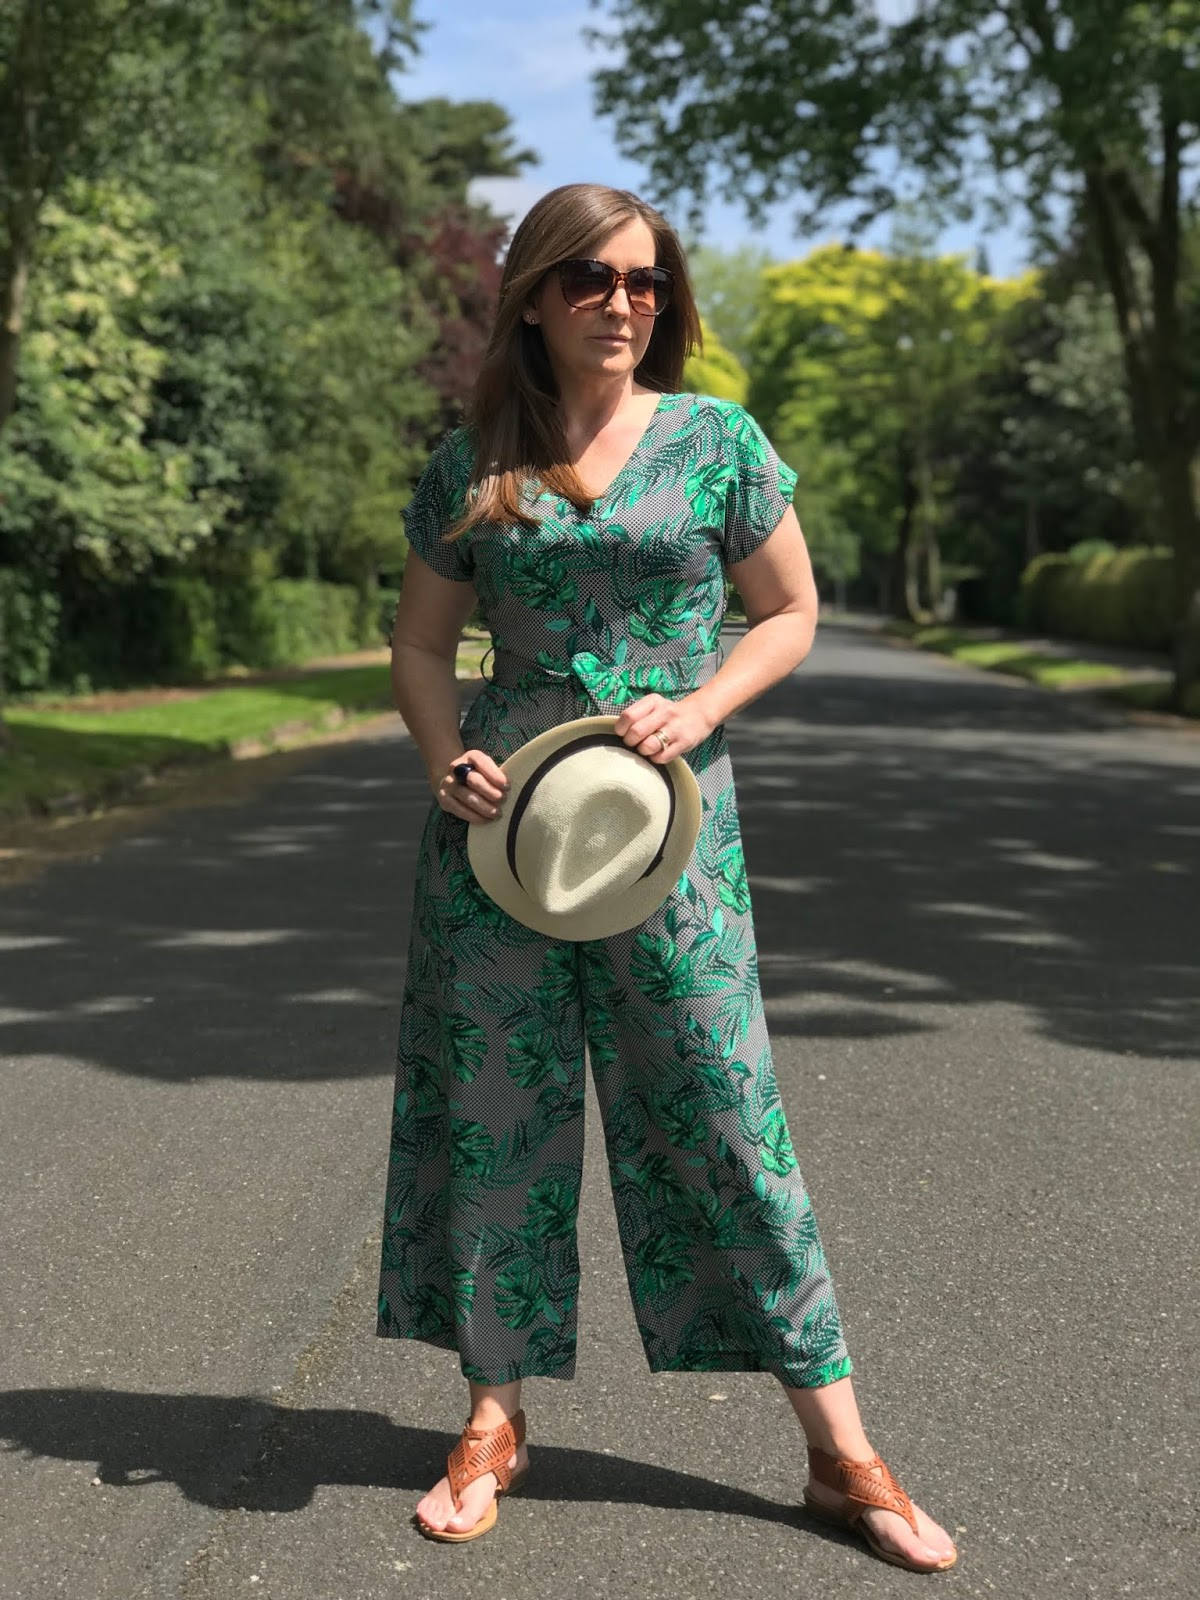 Green Primark pal leaf jumpsuit \ tie belt \ trilby hat \ brown sandals